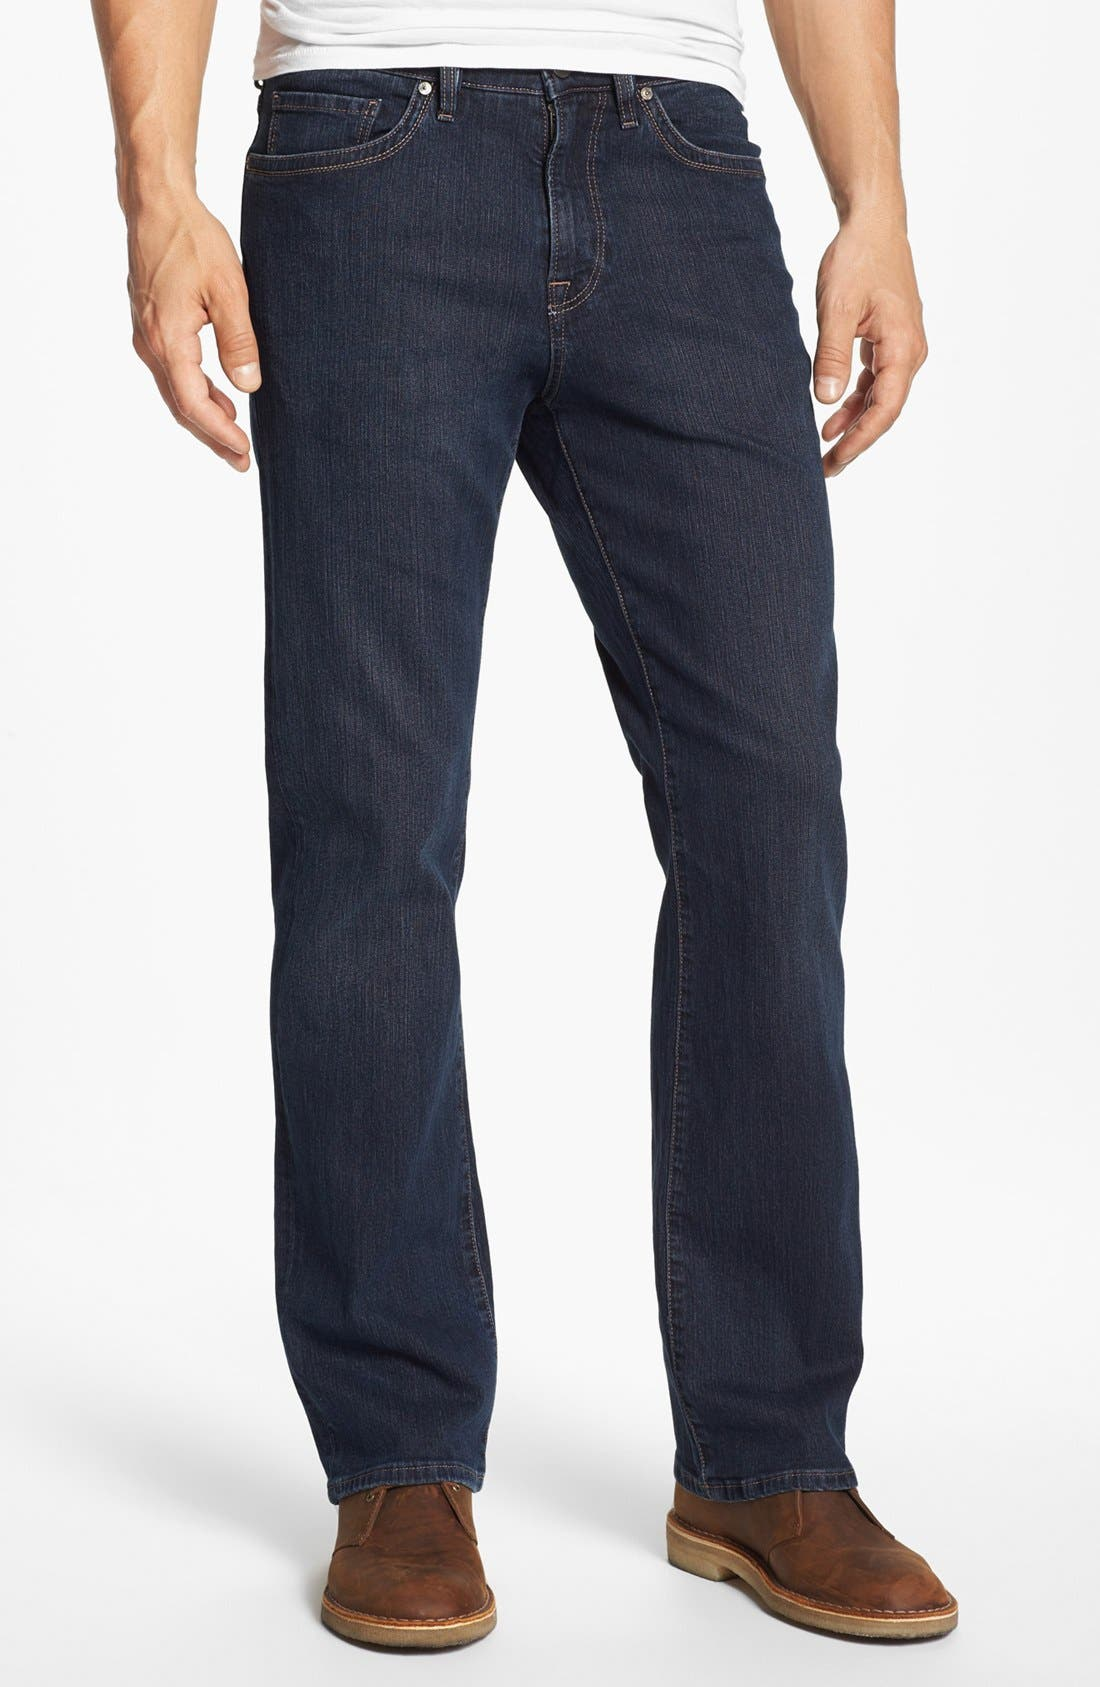 Charisma Relaxed Fit Jeans, Main, color, DARK COMFORT